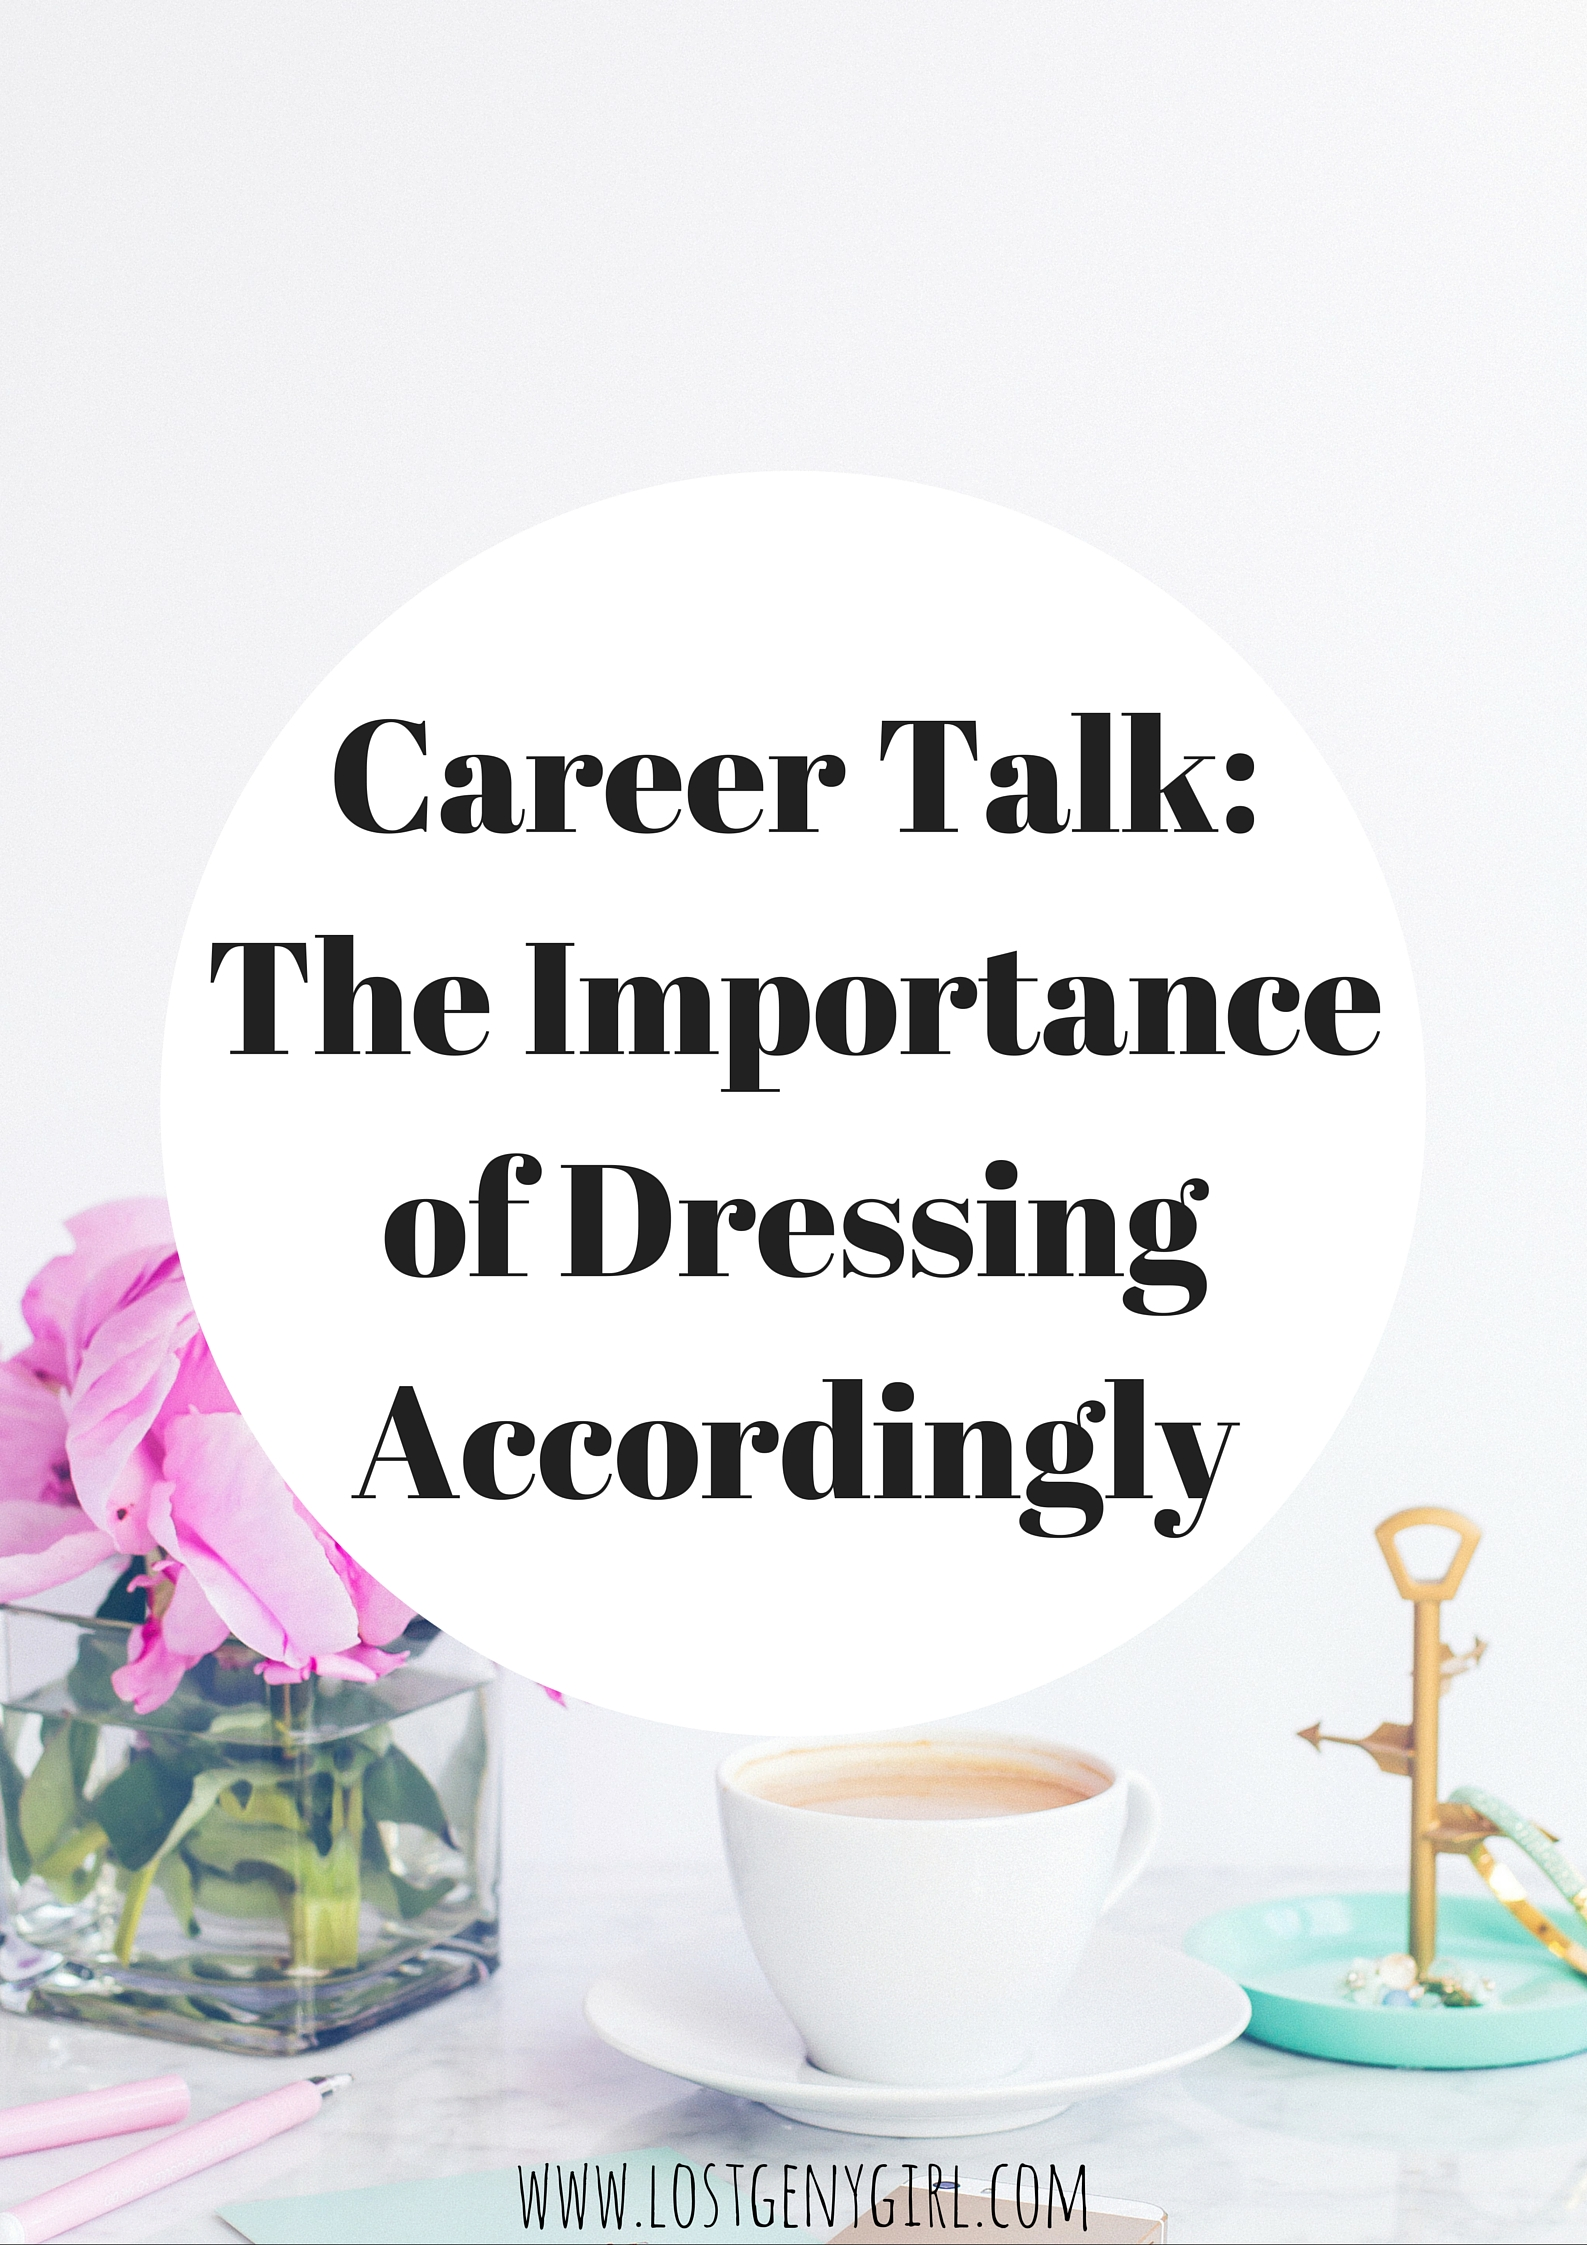 Career Talk Tuesday: The Importance of Dressing Accordingly – Week #2